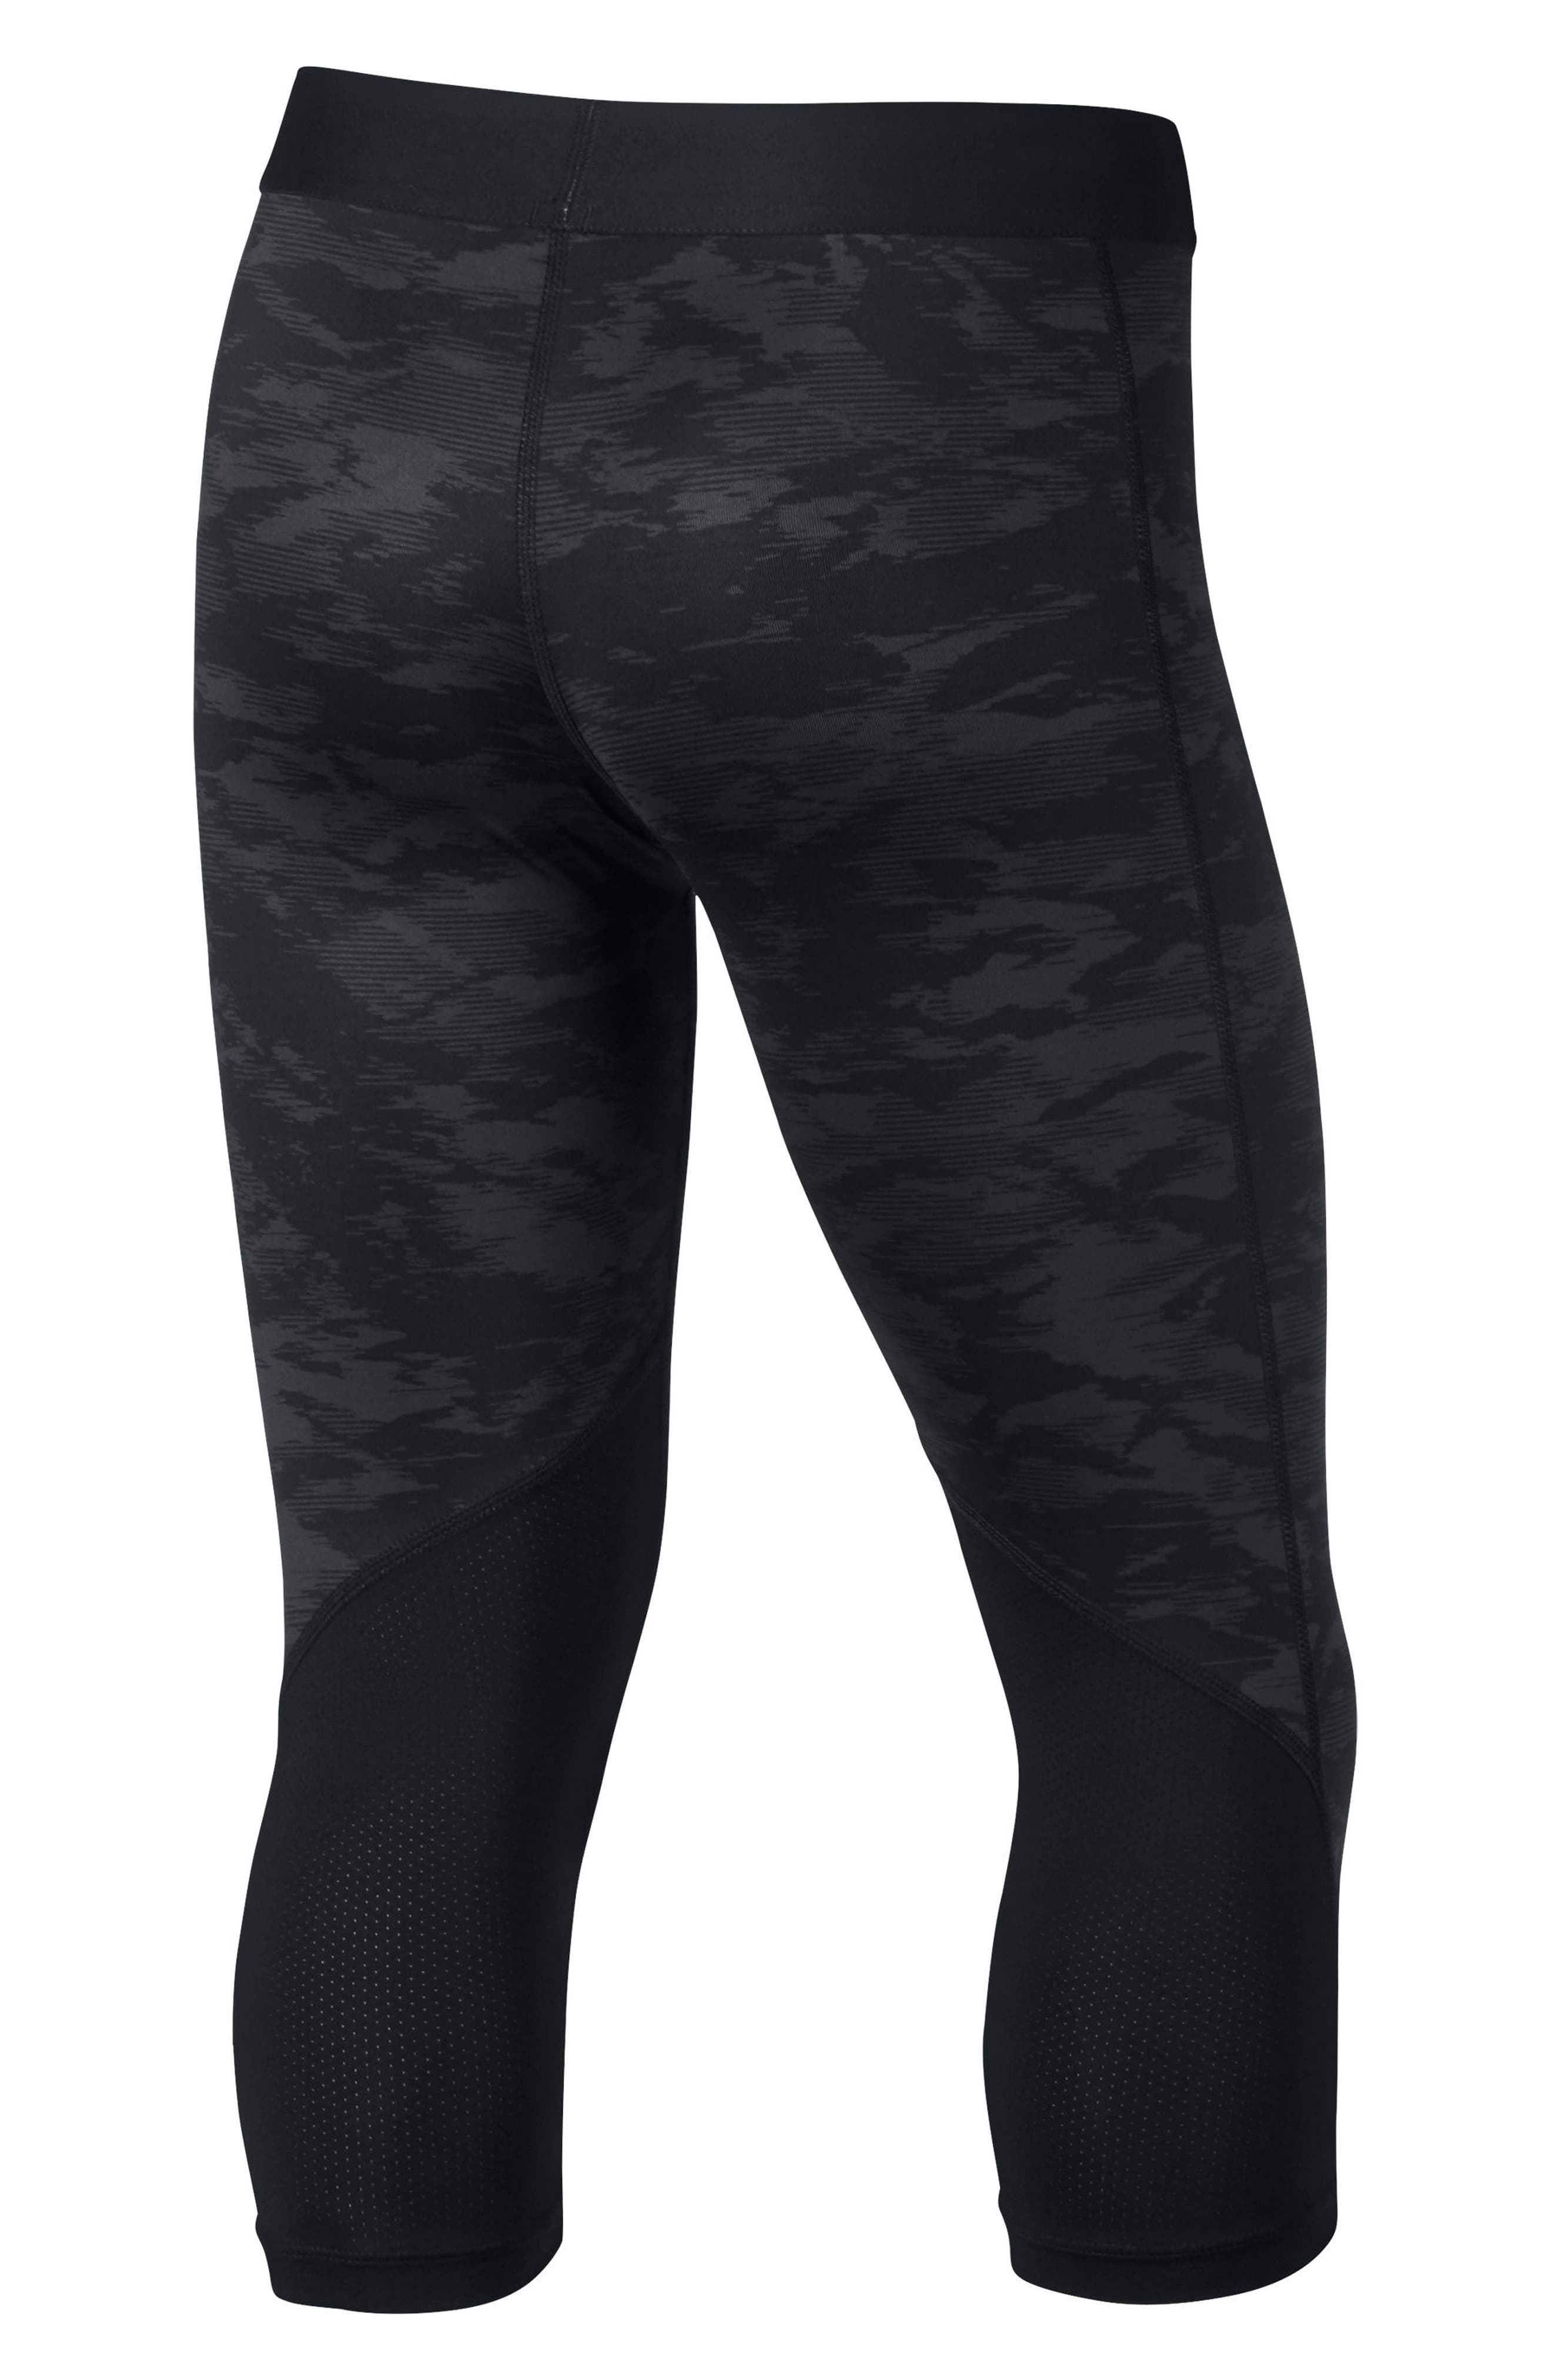 Pro Cool Crop Leggings,                             Alternate thumbnail 2, color,                             010